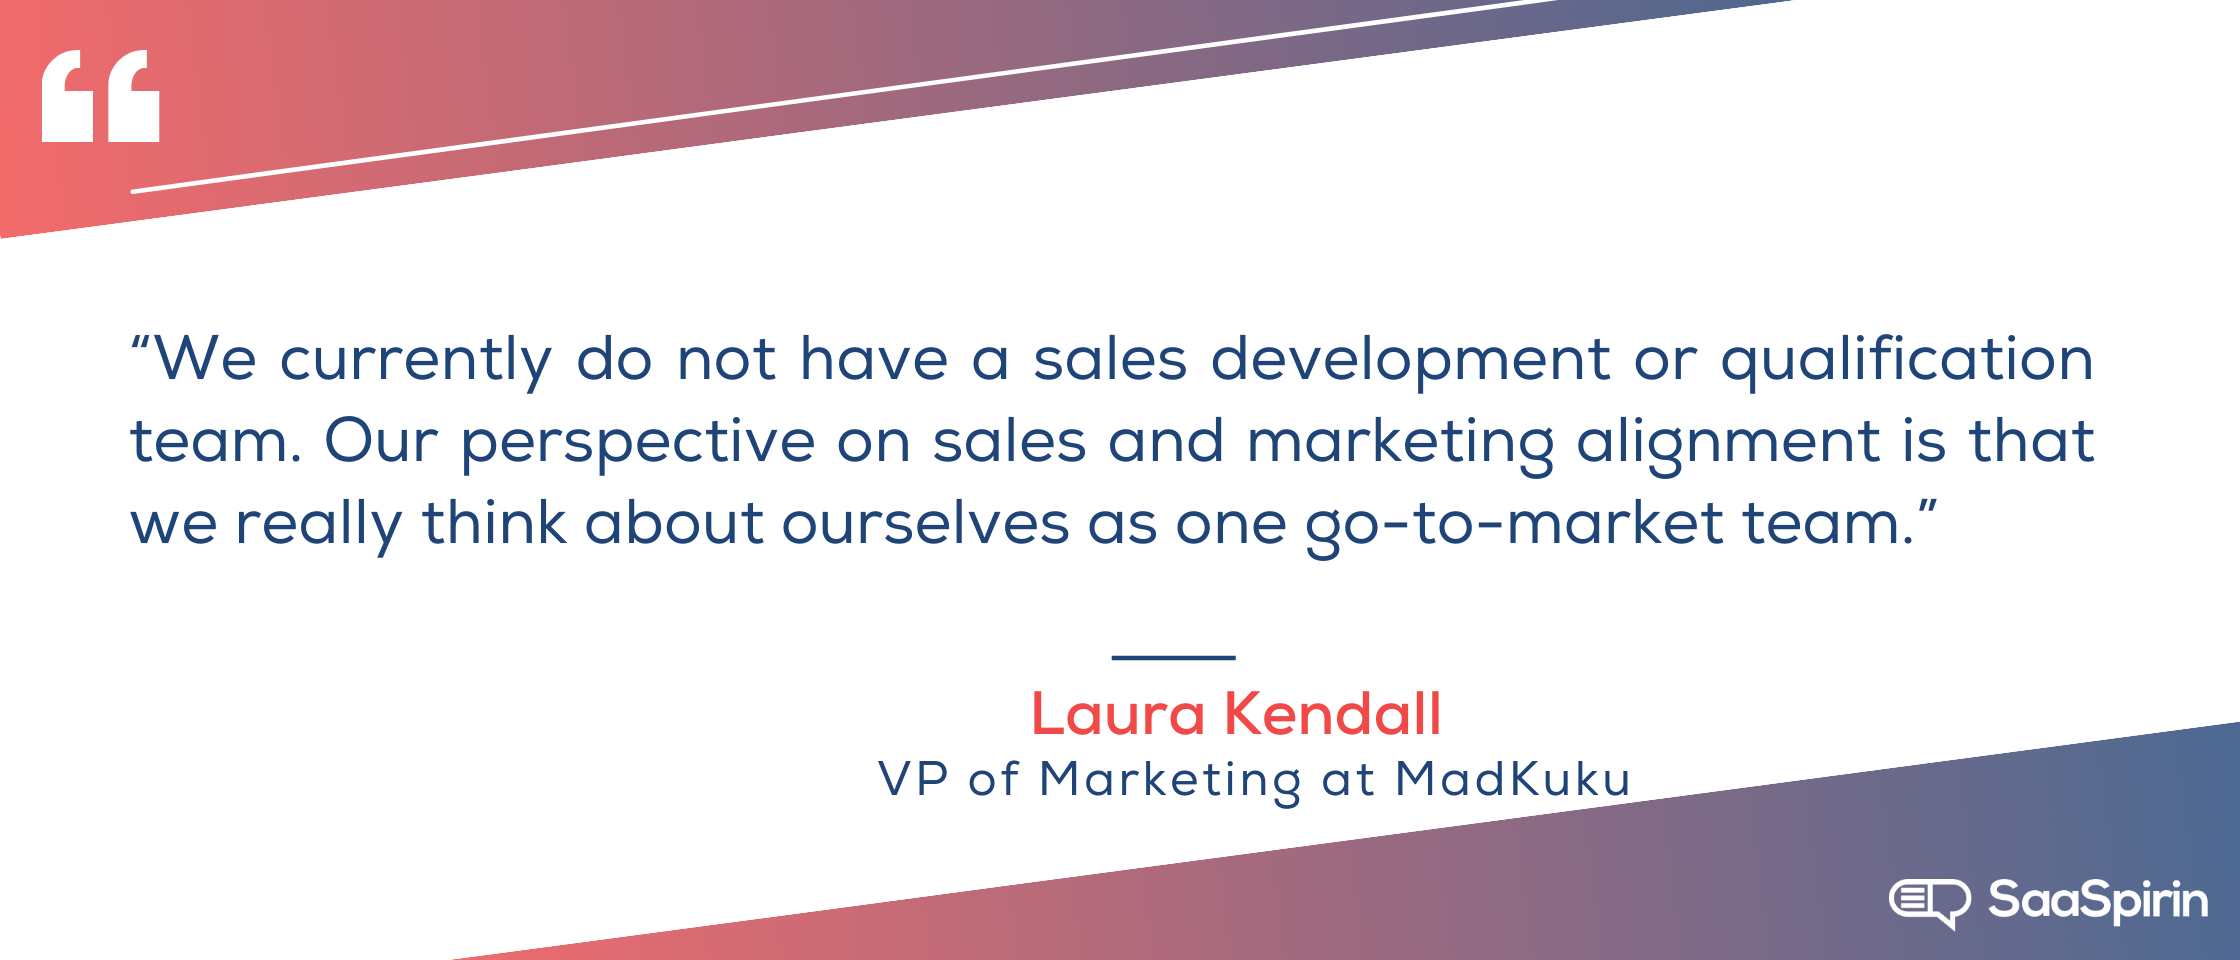 We-currently-do-not-have-a-sales-development-or-qualification-team-Our-perspective-on-sales-and-marketing-alignment-is-that-we-really-think-about-ourselves-as-one-go-to-market-team.png